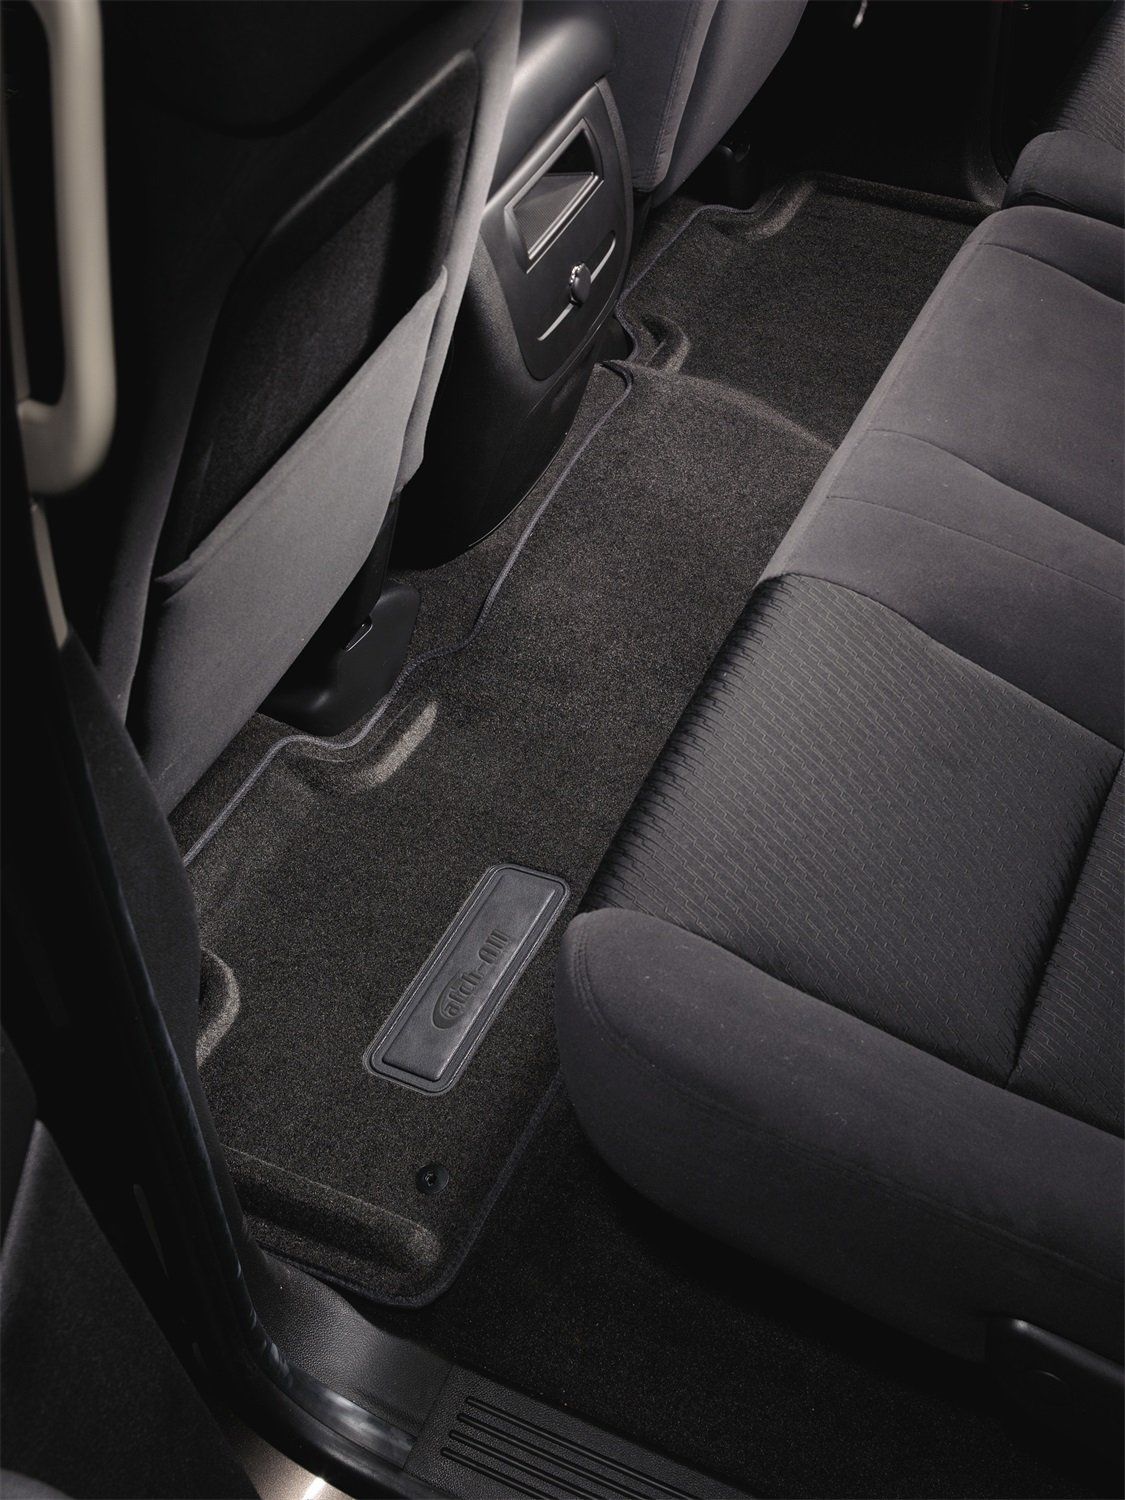 Lund 623031 Catch-All Premium Charcoal Carpet 2nd Seat Floor Mat